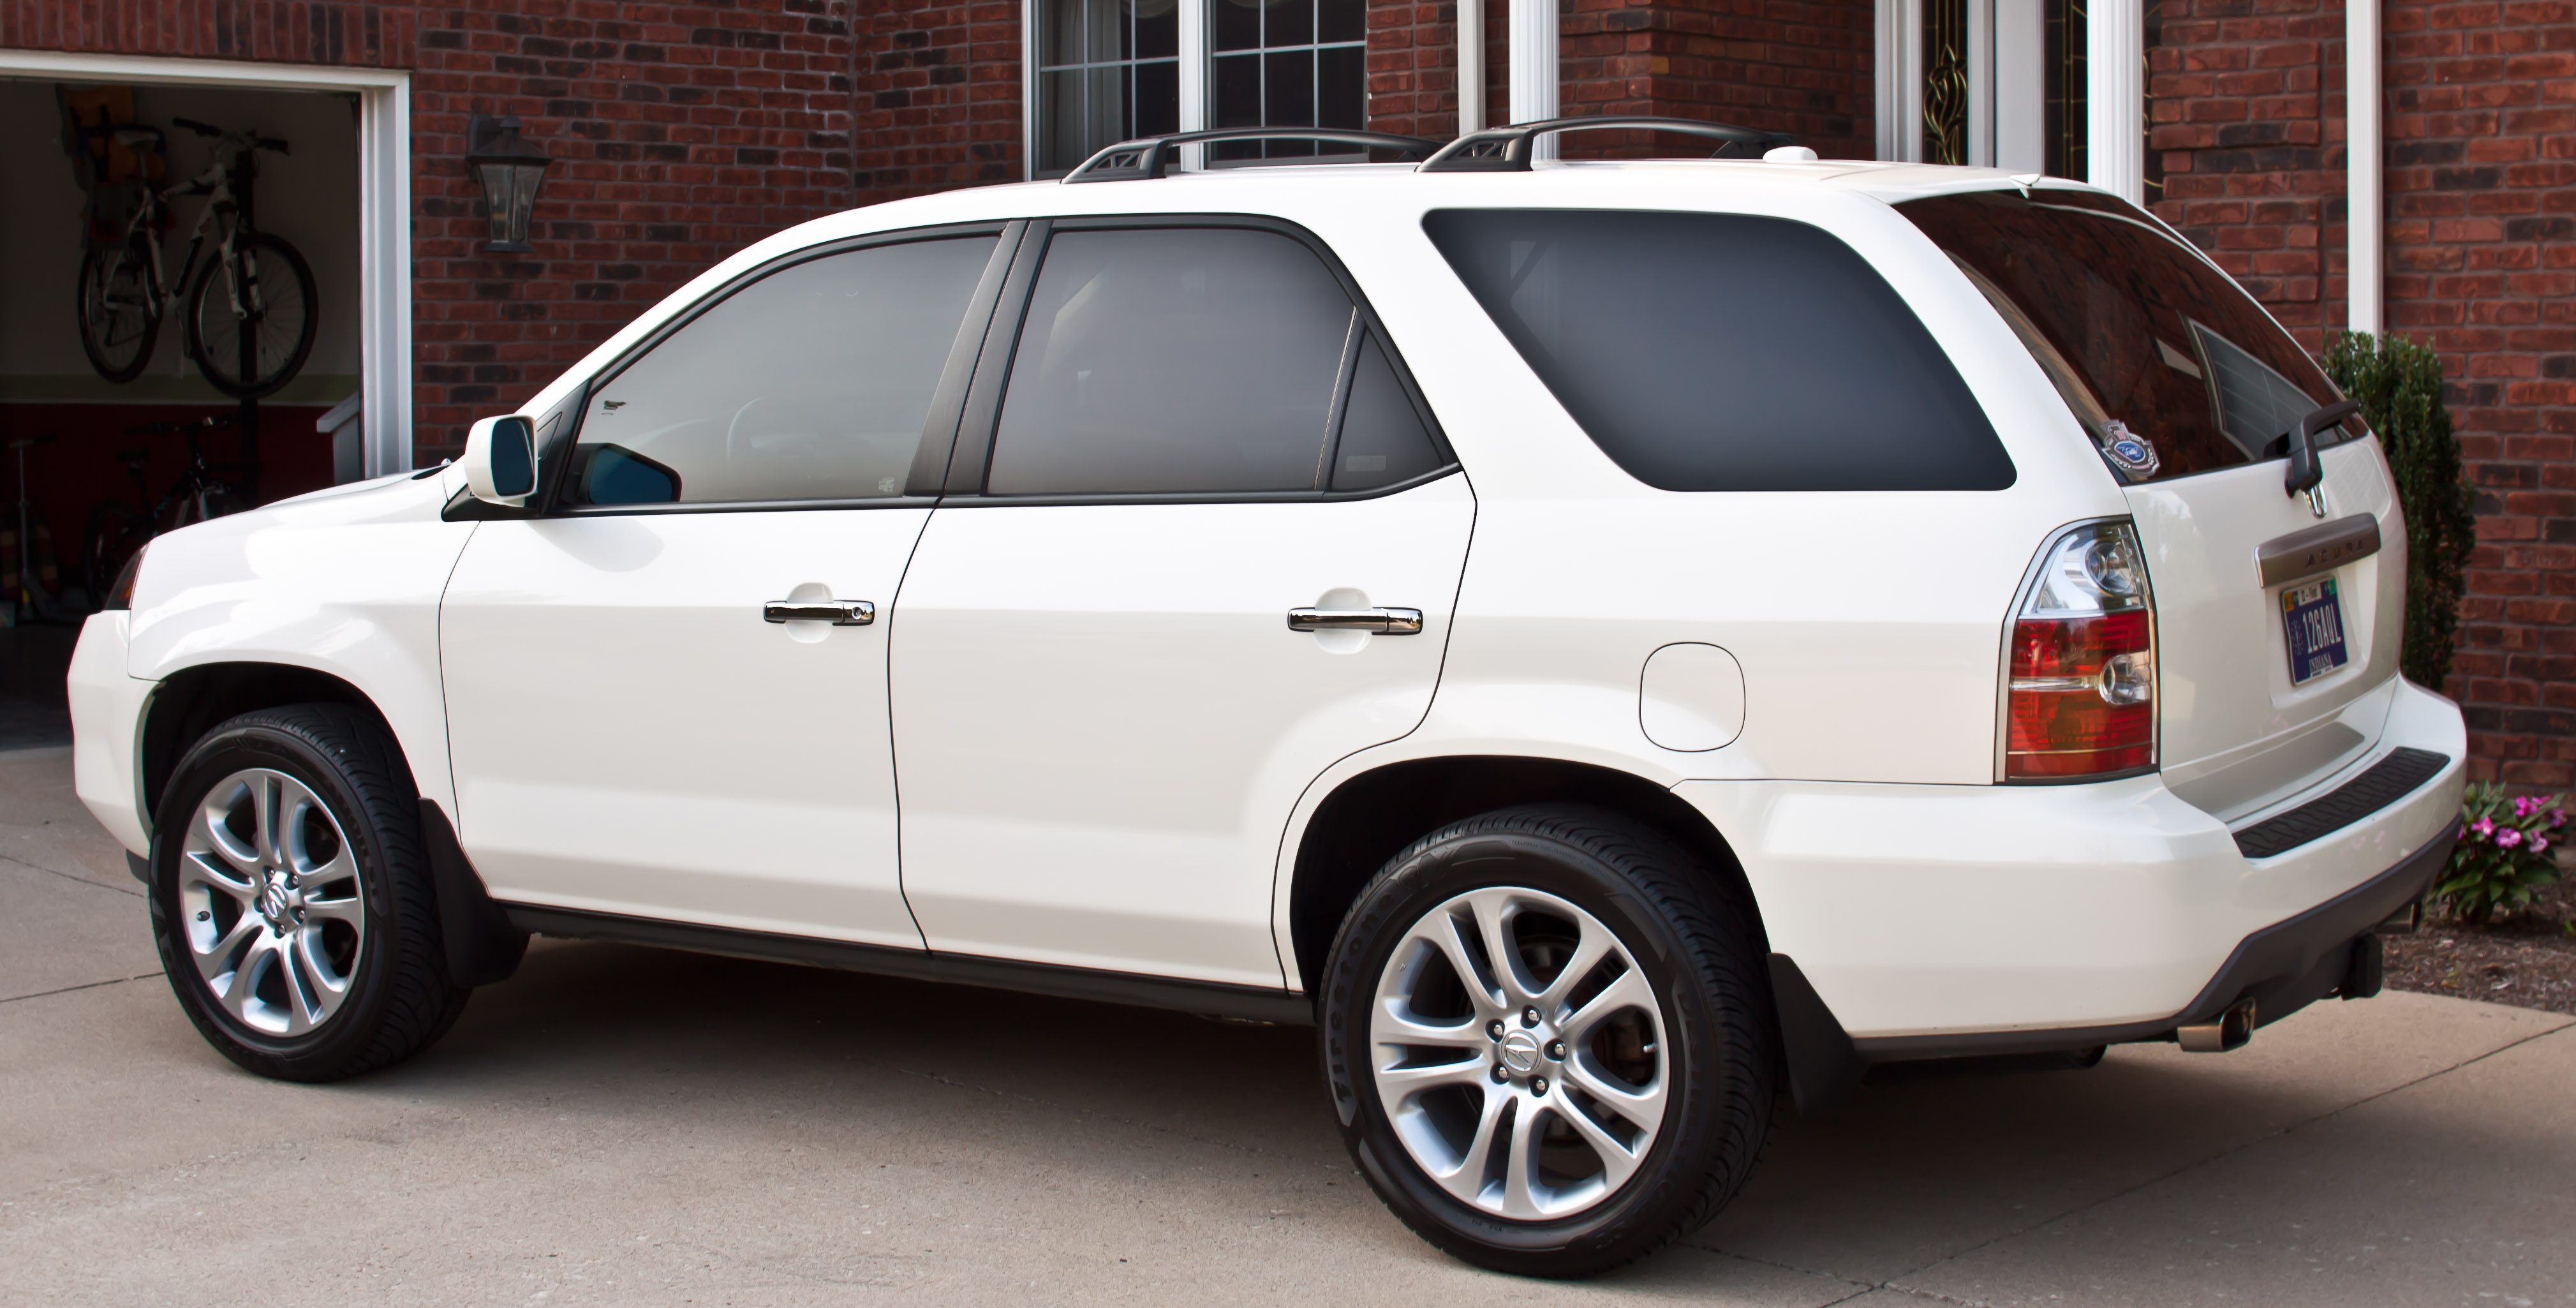 large sh suv awd composite entertainment palladium metallic groovecar advance research mdx package w acura and